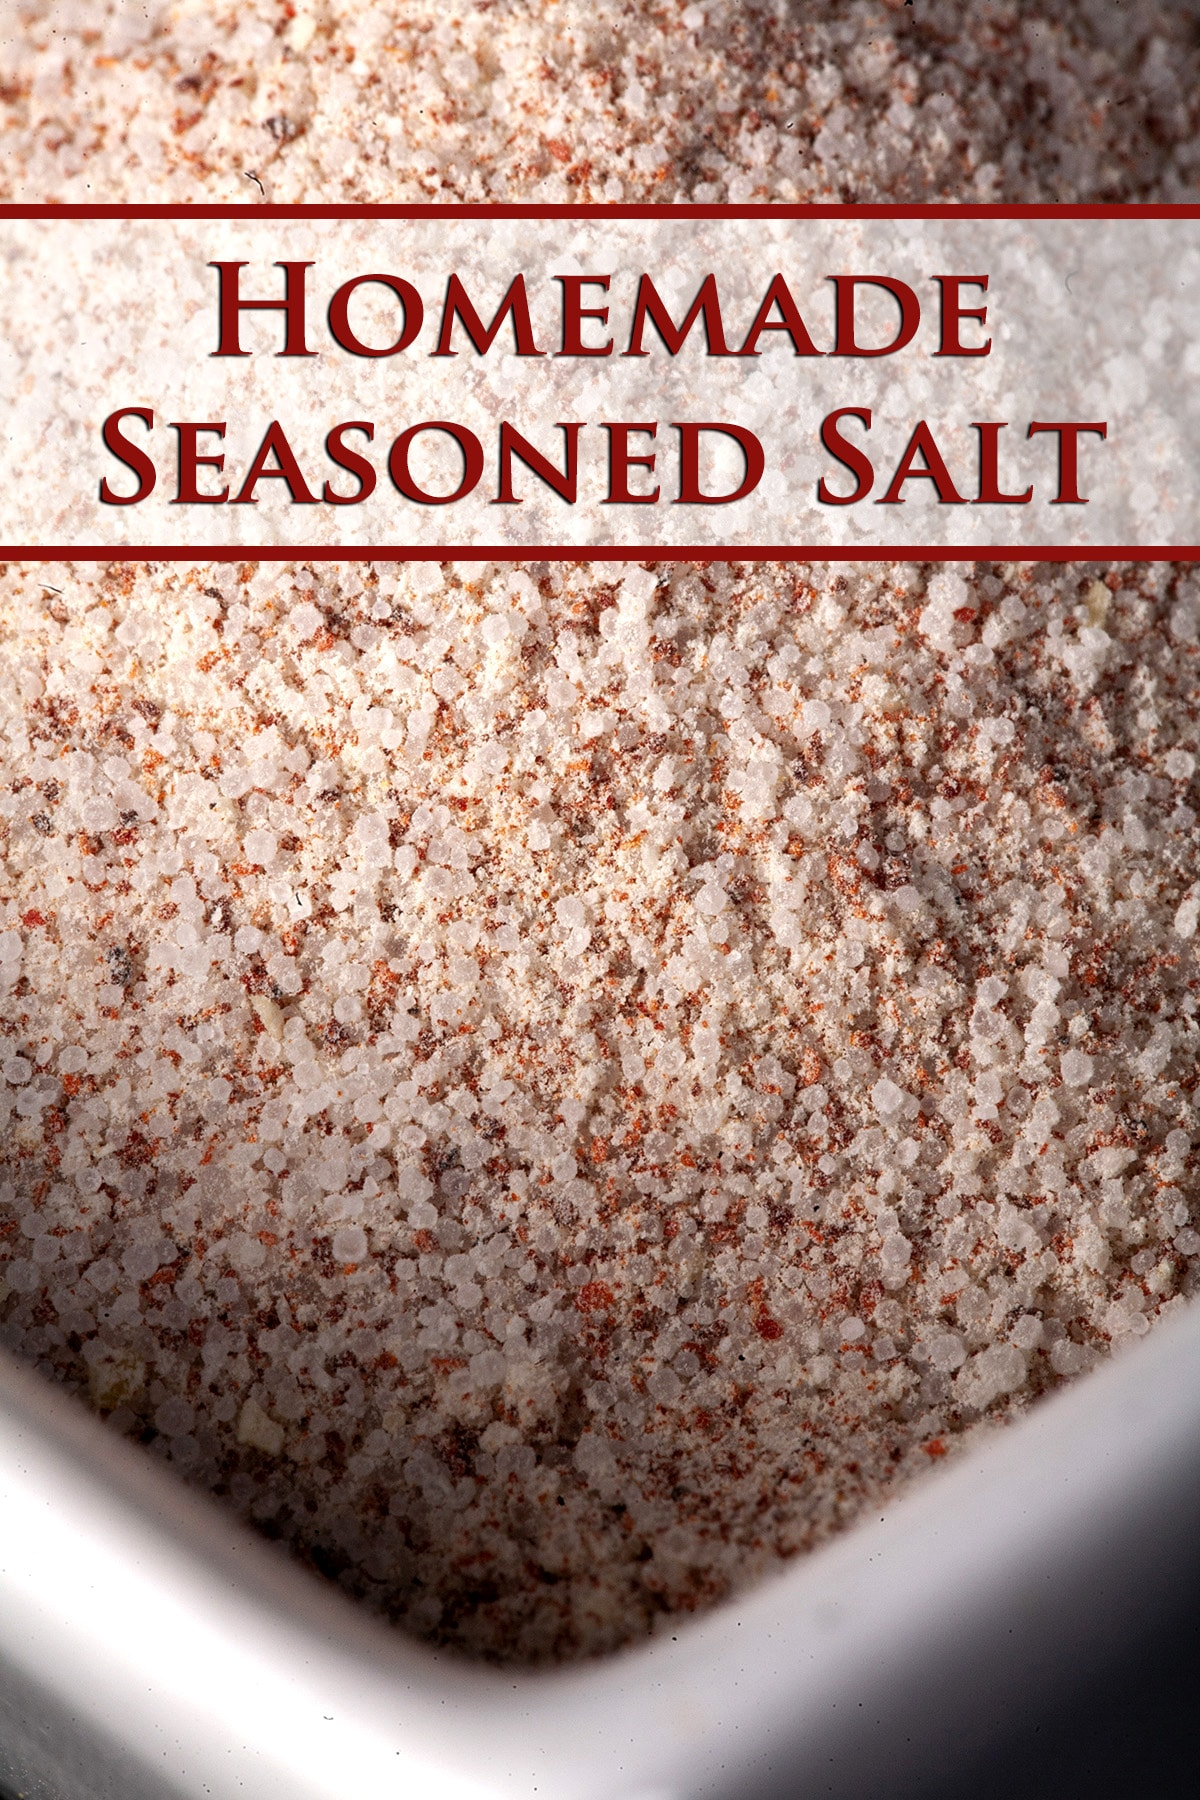 A small, square shaped white bowl with a pinkish homemade seasoned salt mixture in it.